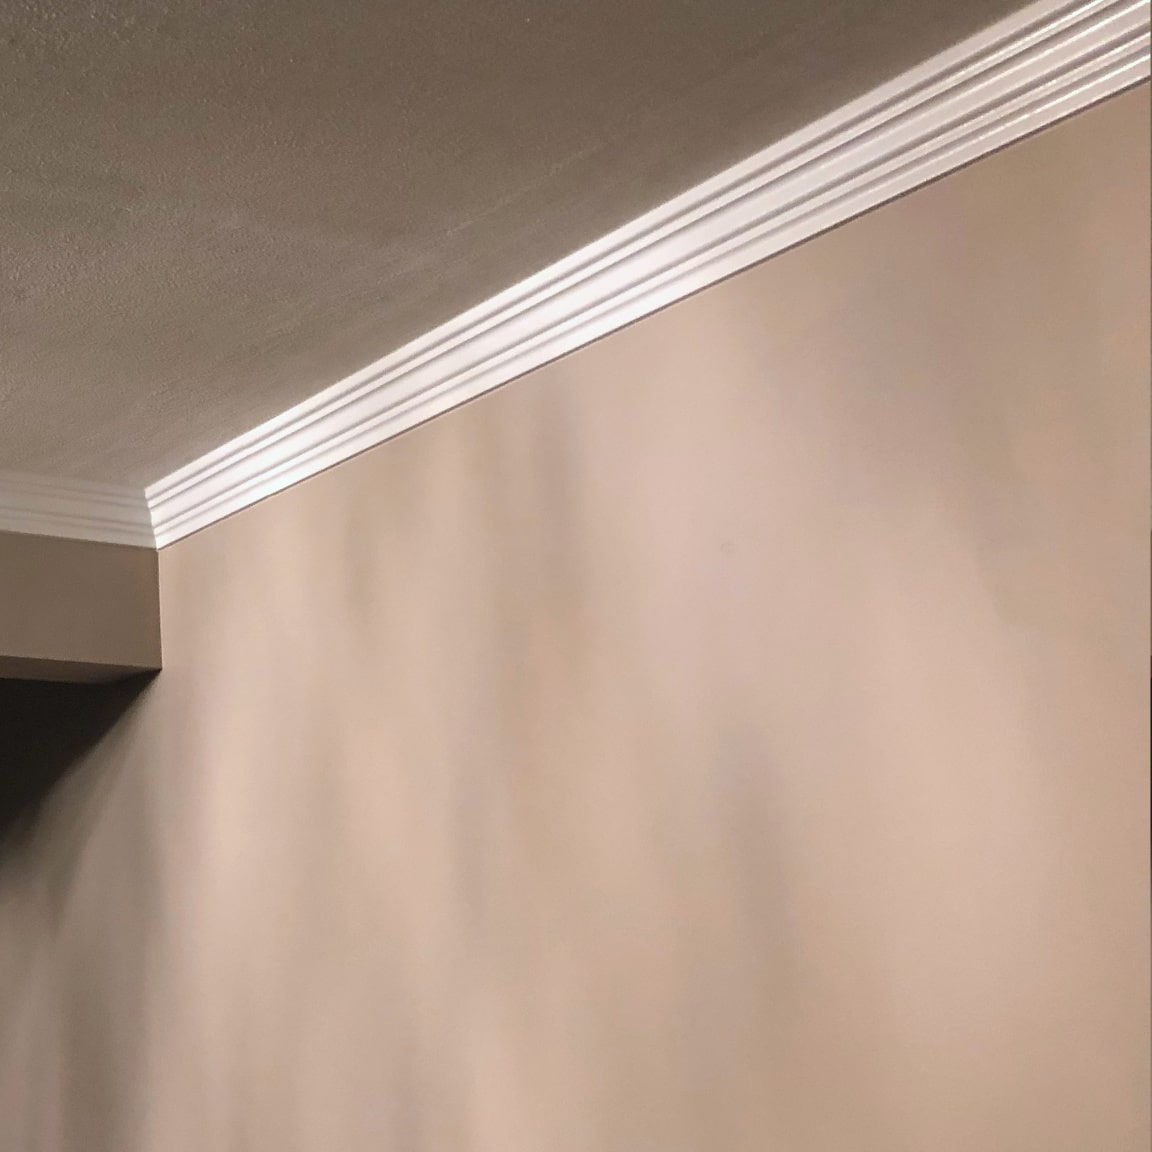 Foam Crown Molding in Connecticut Home